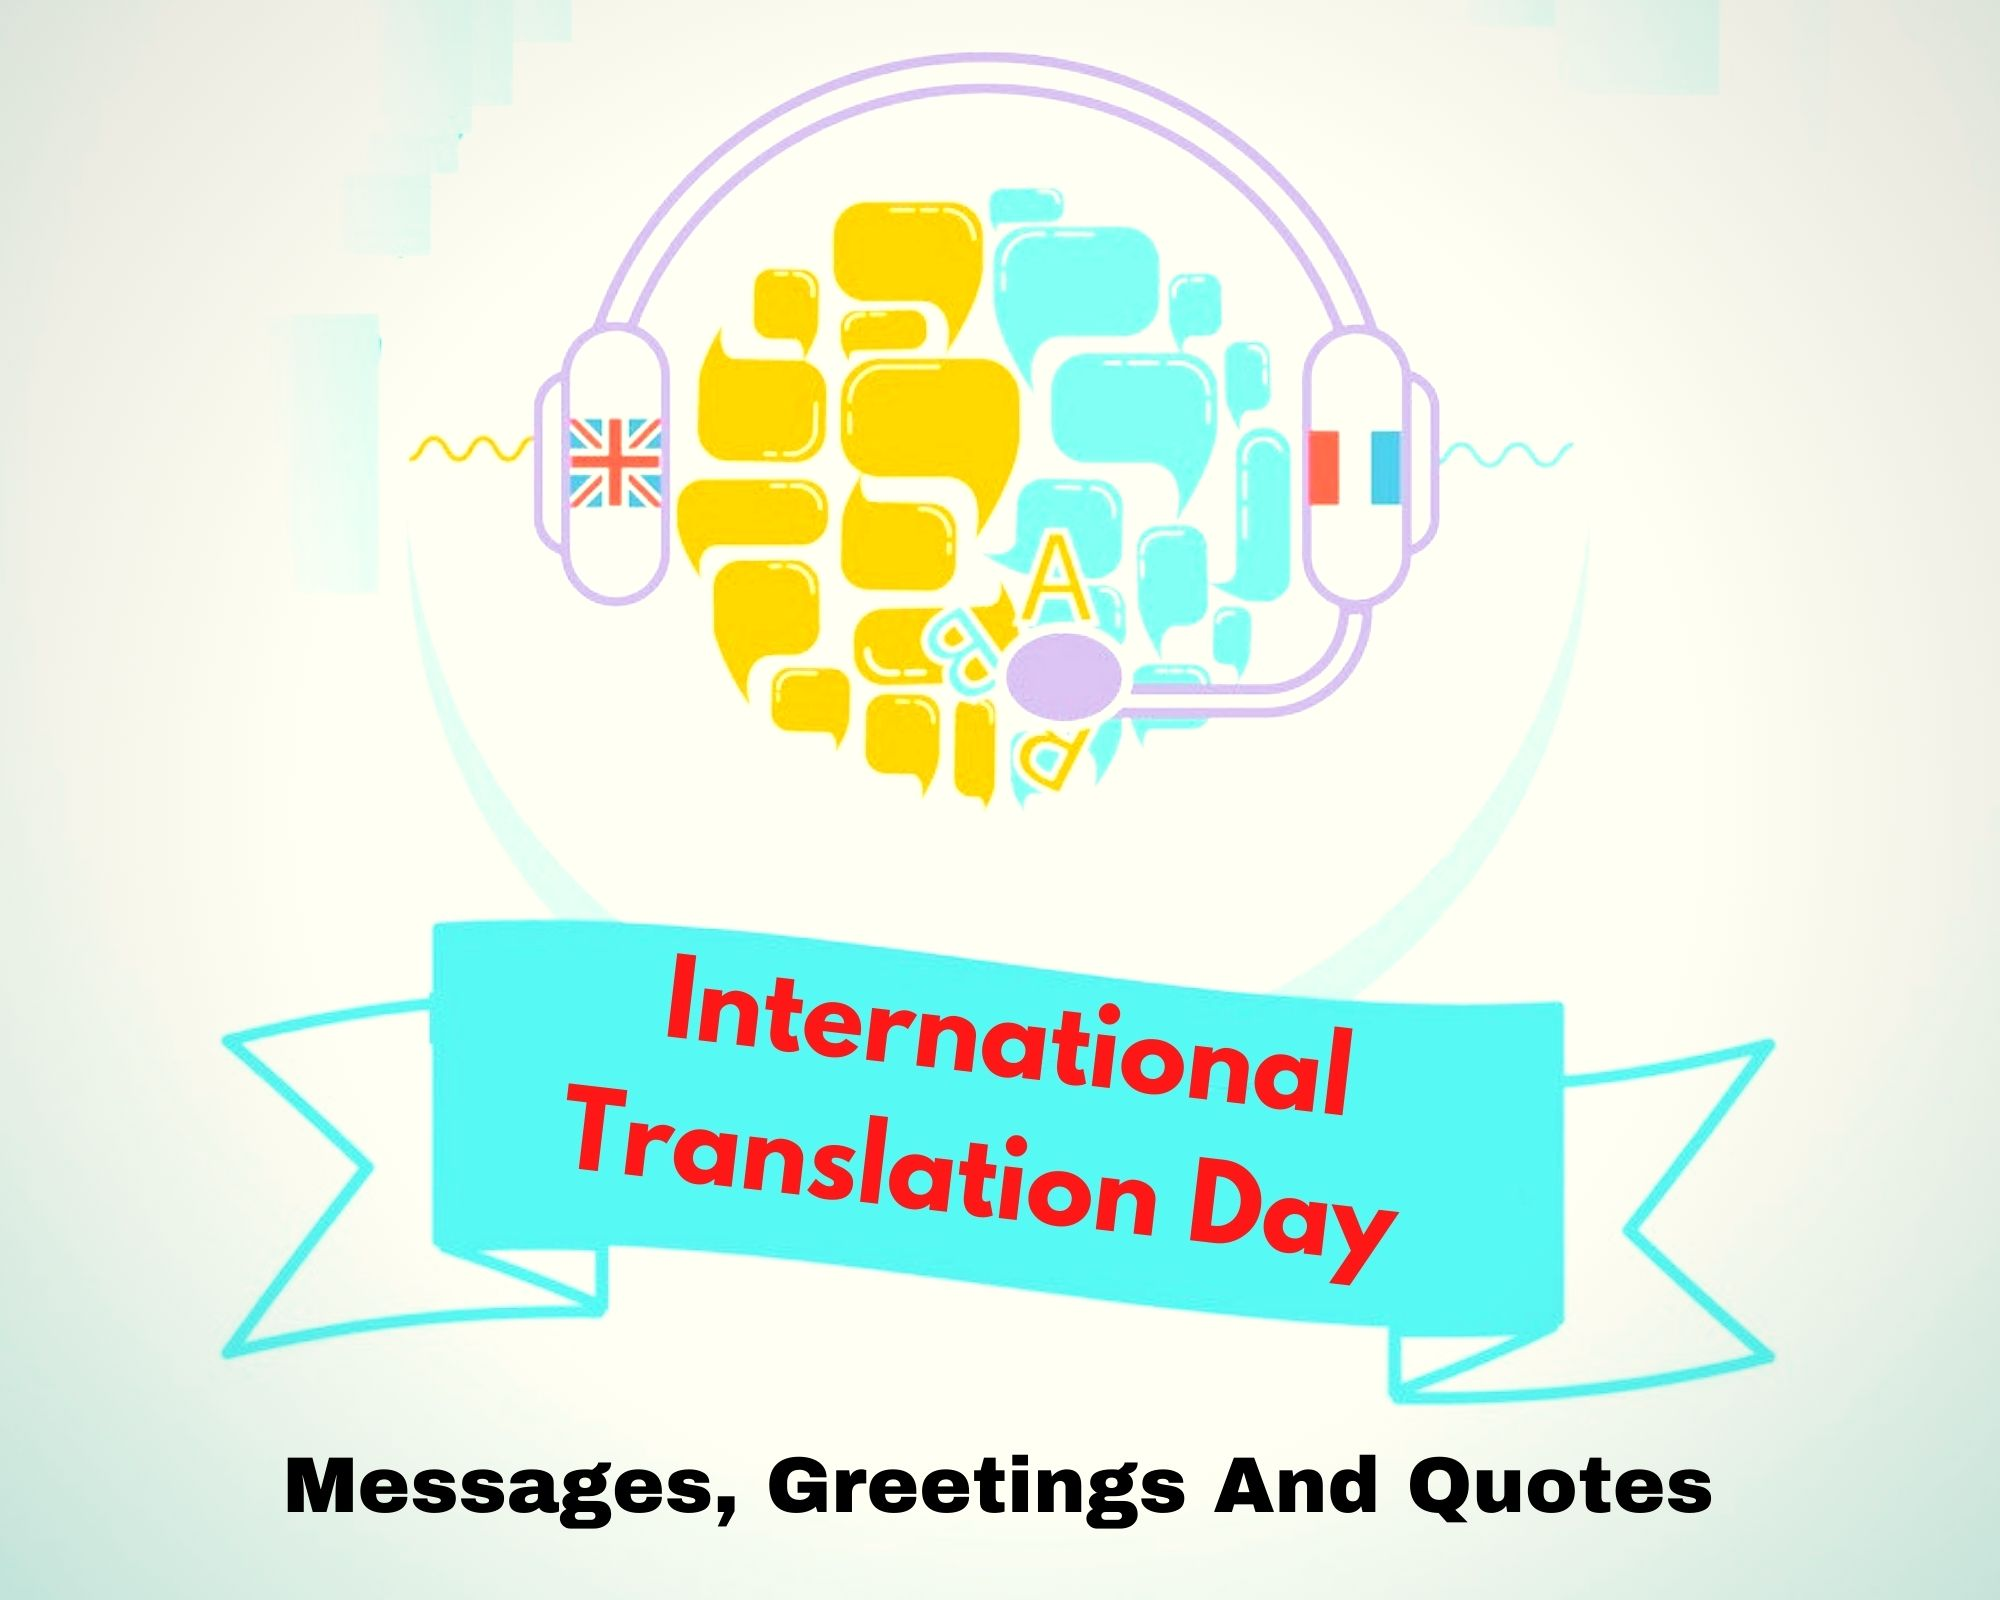 Happy International Translation Day Messages, Greetings And Quotes